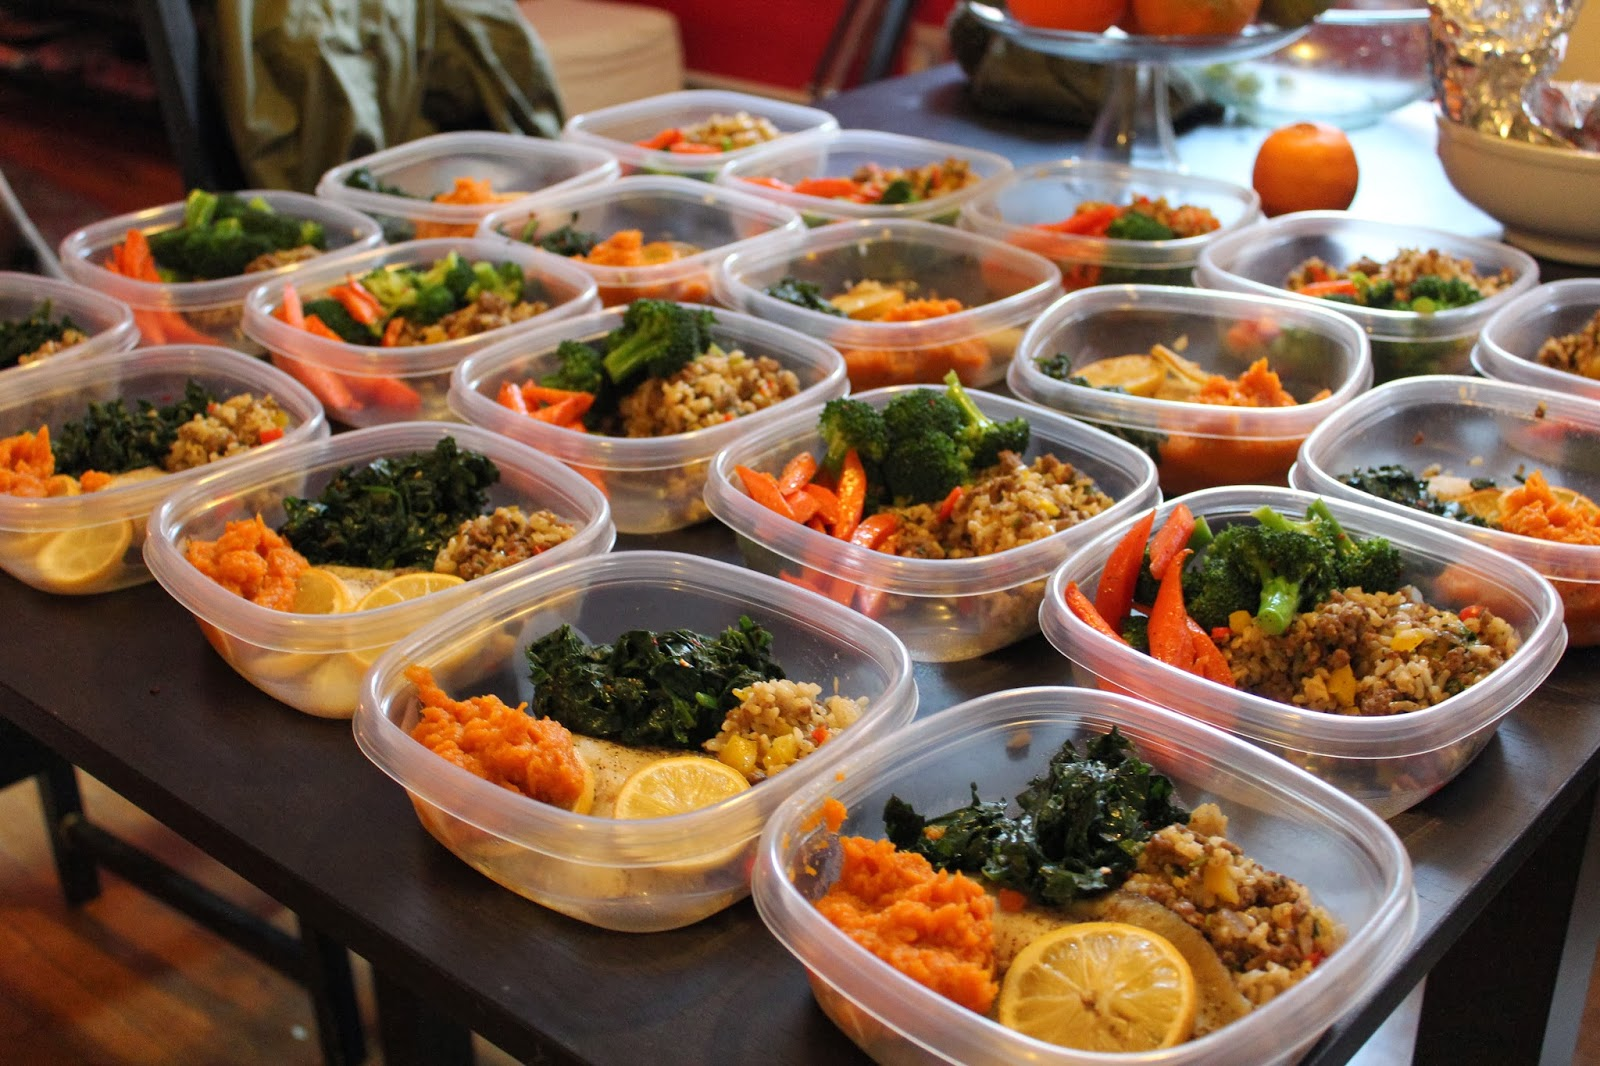 Mealprep expert tips for easy healthy and affordable meals all mealprep expert tips for easy healthy and affordable meals all week long forumfinder Images